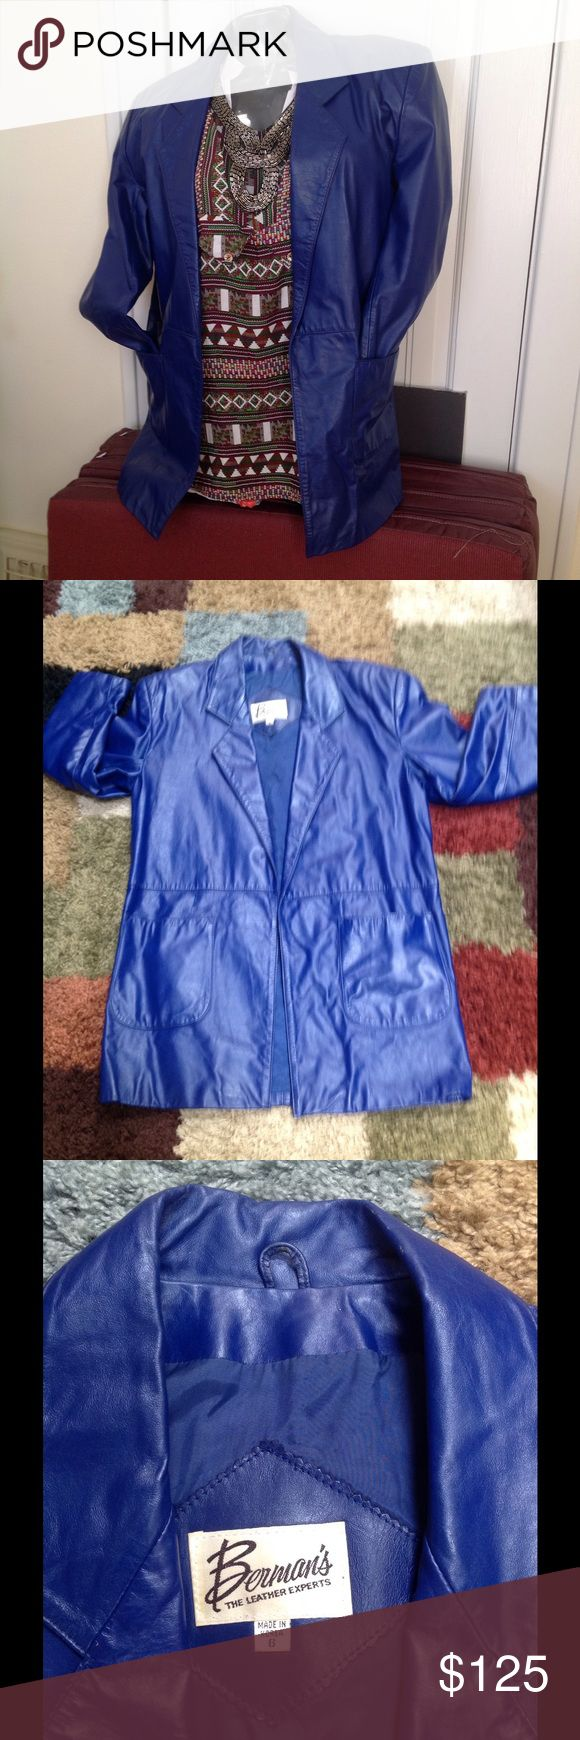 Royal Blue Leather Royal blue blazer jacket with deep pocket, open blazer type, very soft leather, excellent condition and wore only a few times. This is also on another site. Jackets & Coats Blazers